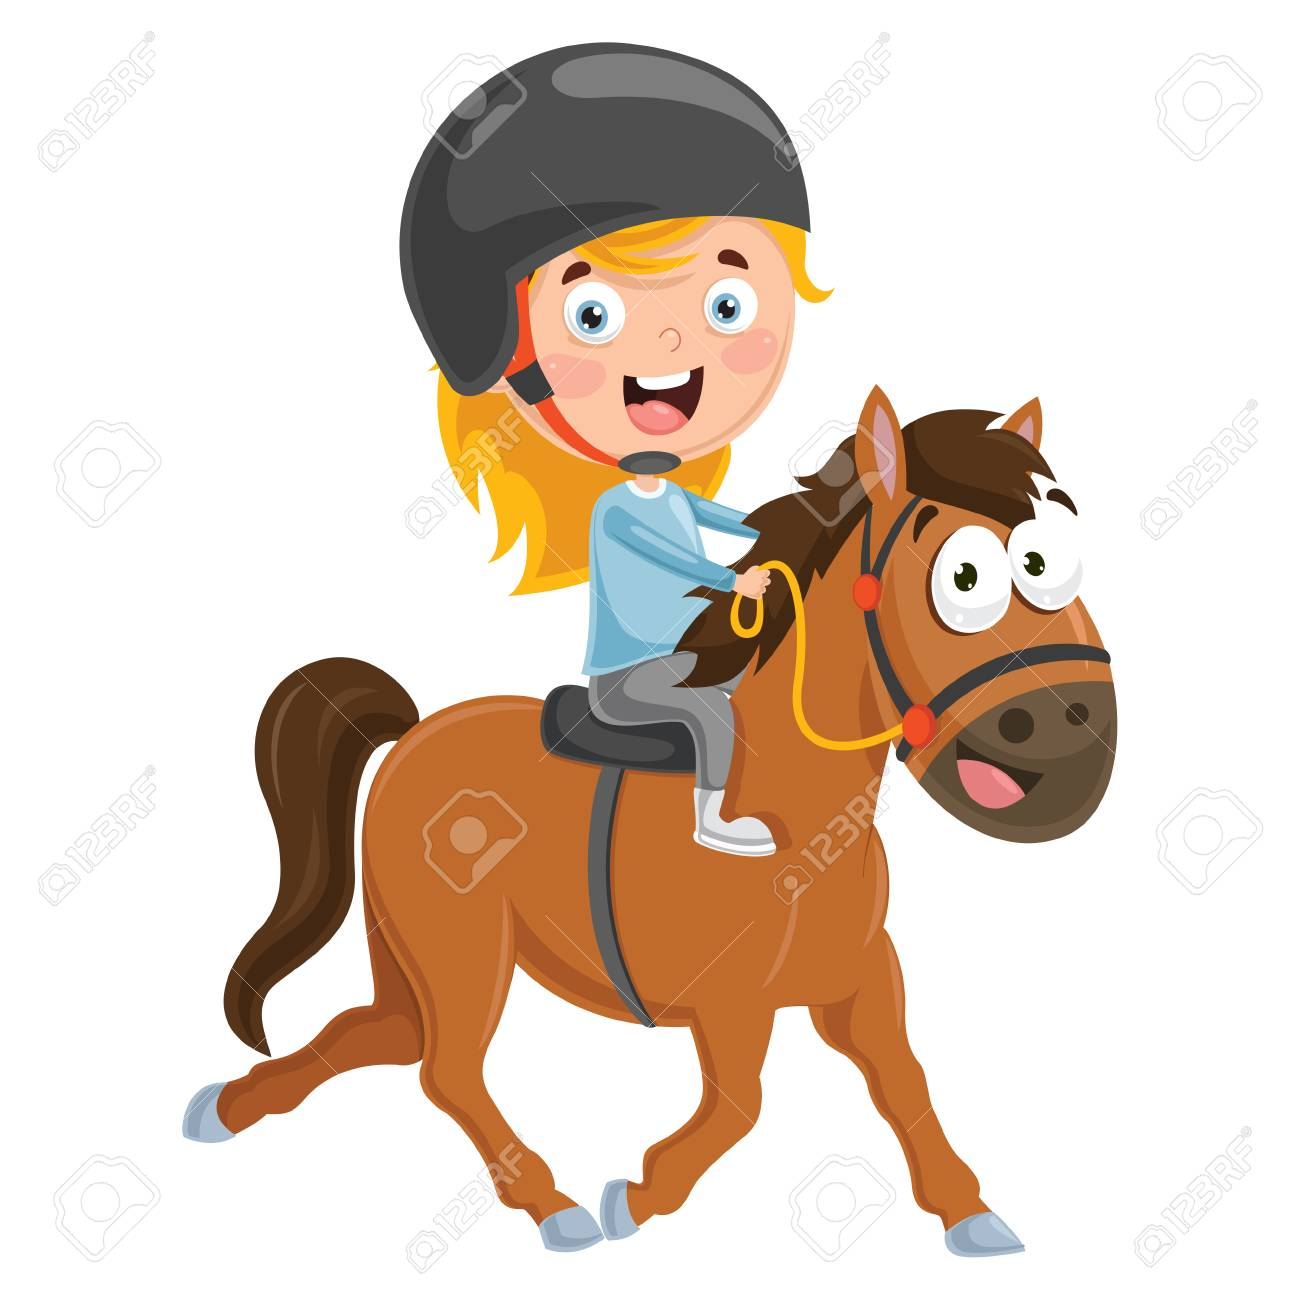 Vector Illustration Of Kid Riding Horse Royalty Free Cliparts Vectors And Stock Illustration Image 94911624